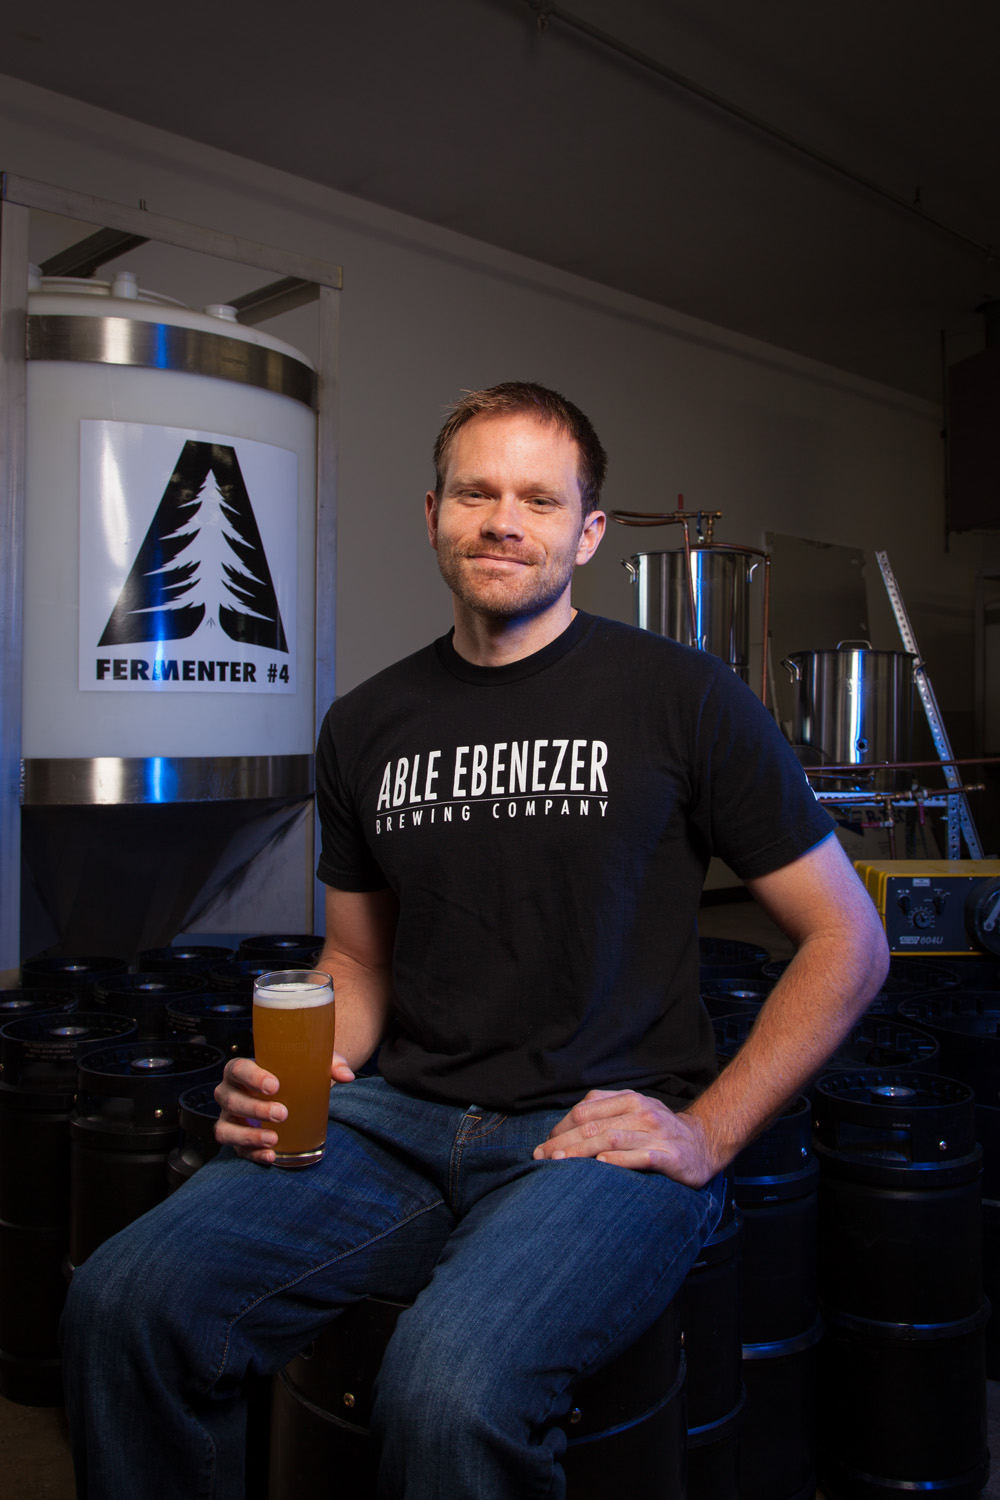 Mike Frizzelle, Head Brewer at Able Ebenezer Brewing Co. Merrimack, NH Established in 2013